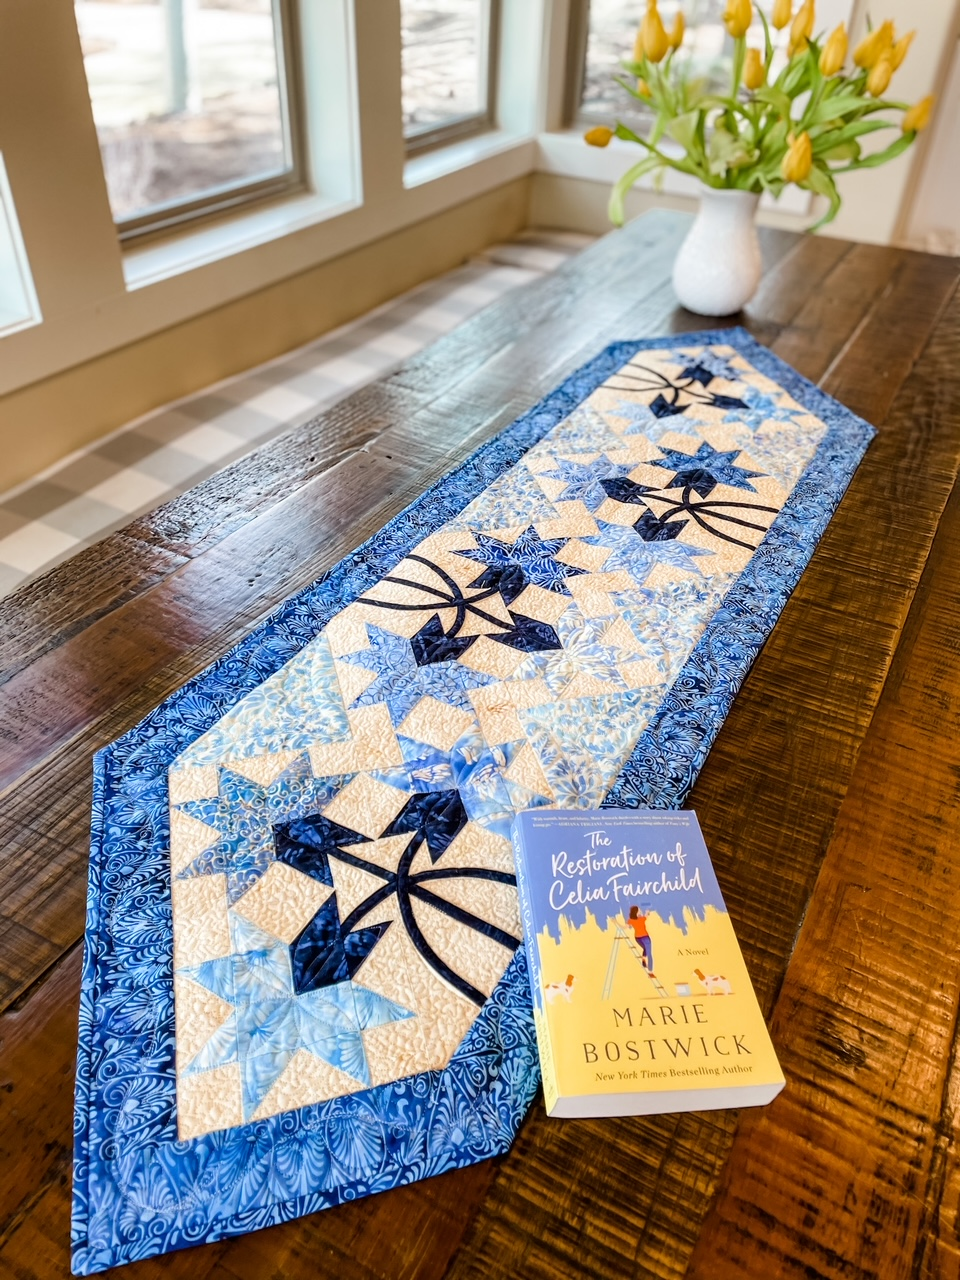 The quilted table runner on a wooden table, with Marie's novel and vase of flowers on top of it.